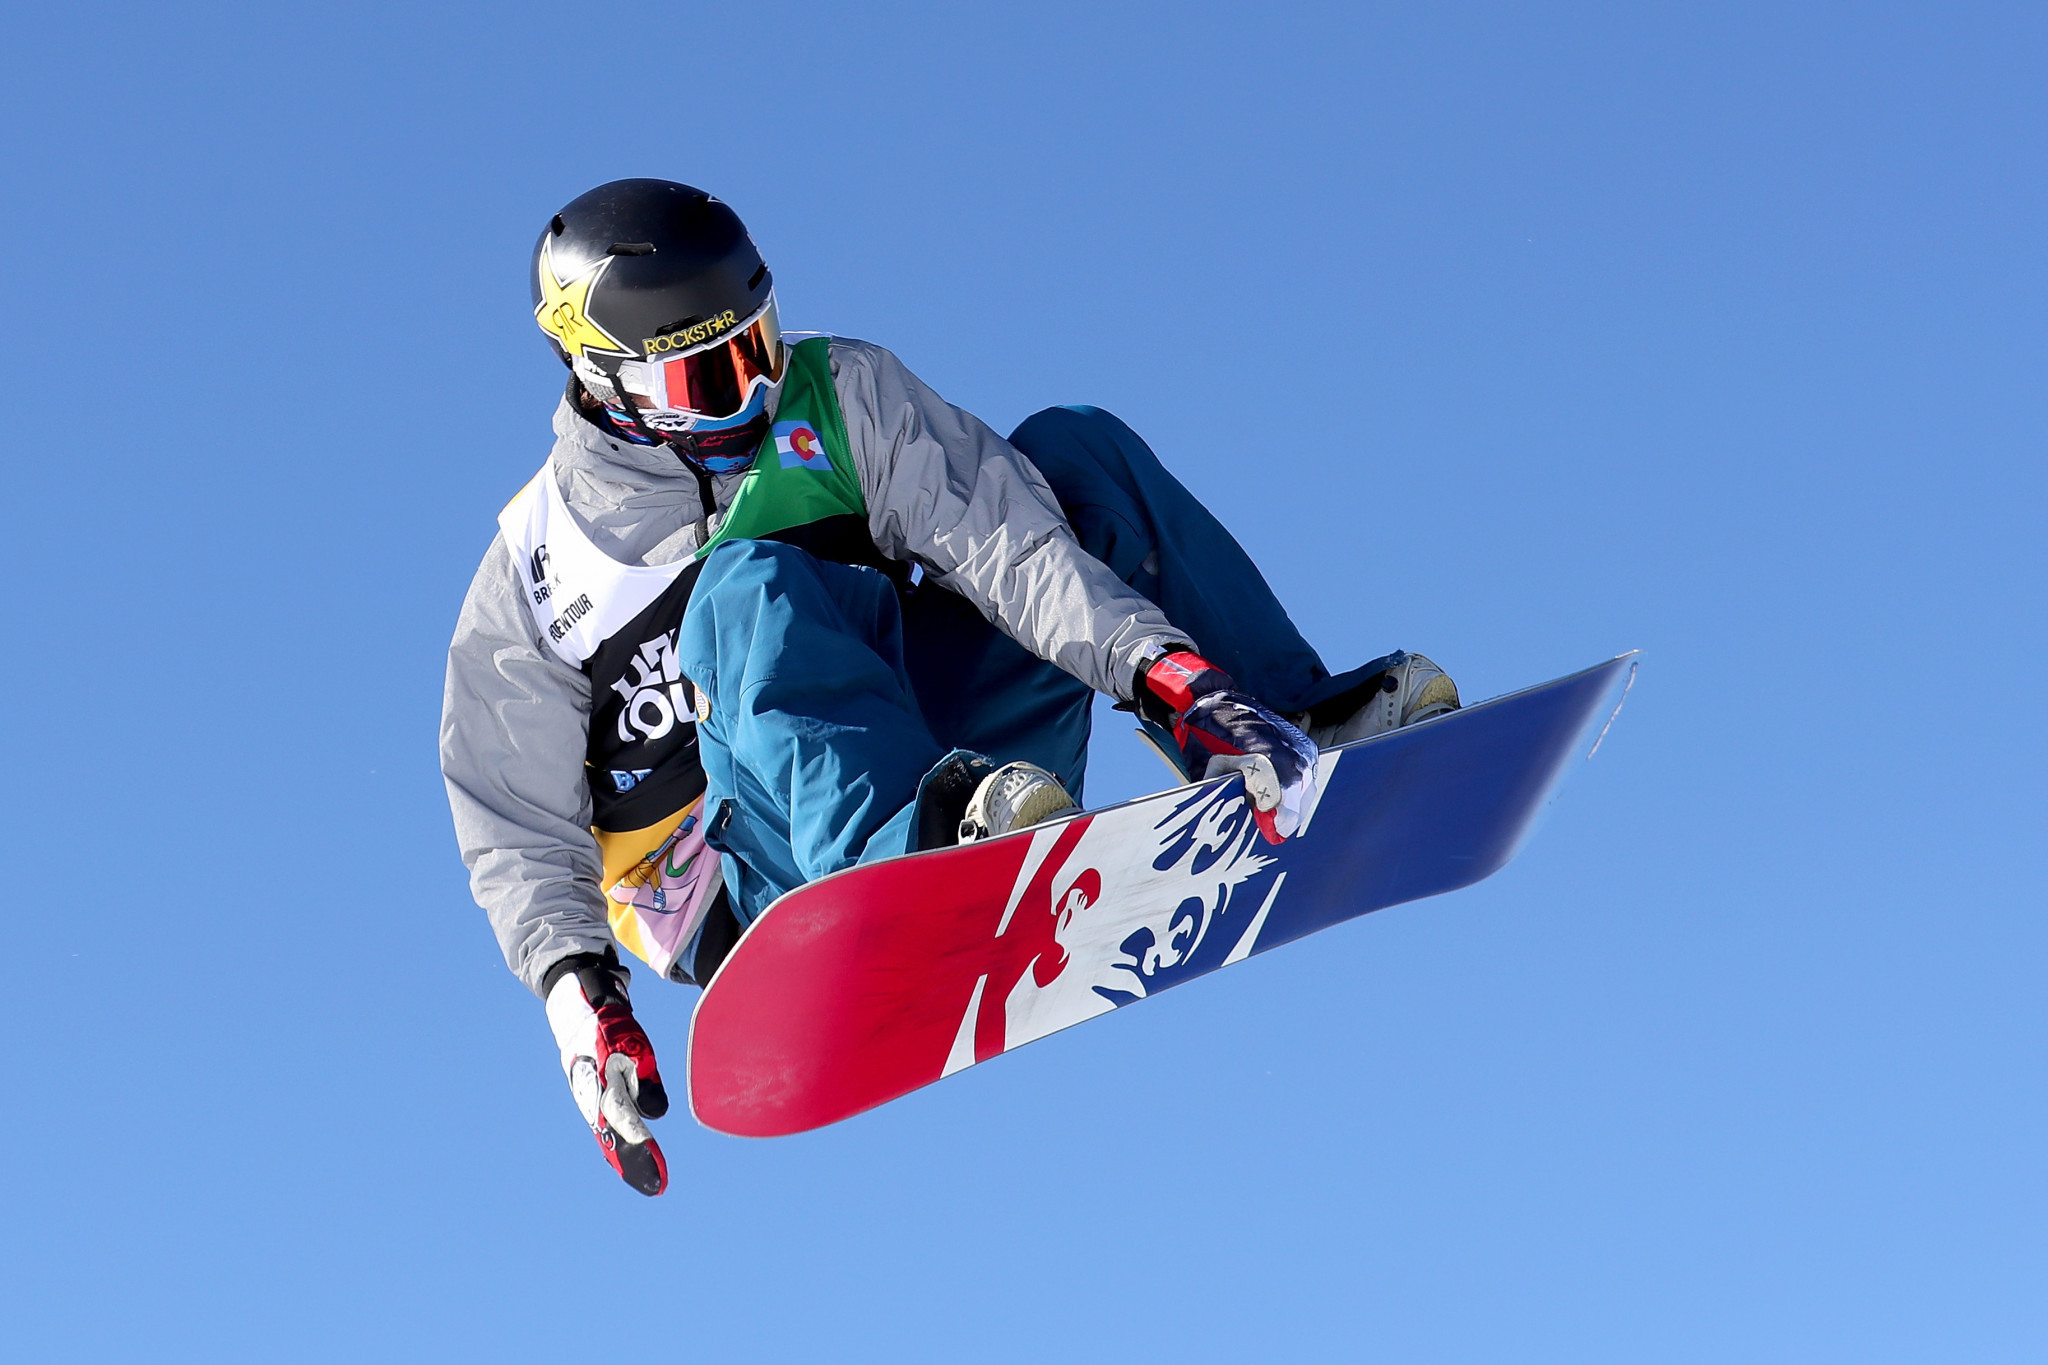 Corning returns to scene of overall title triumph with Seiser Alm ready to host FIS Snowboard World Cup